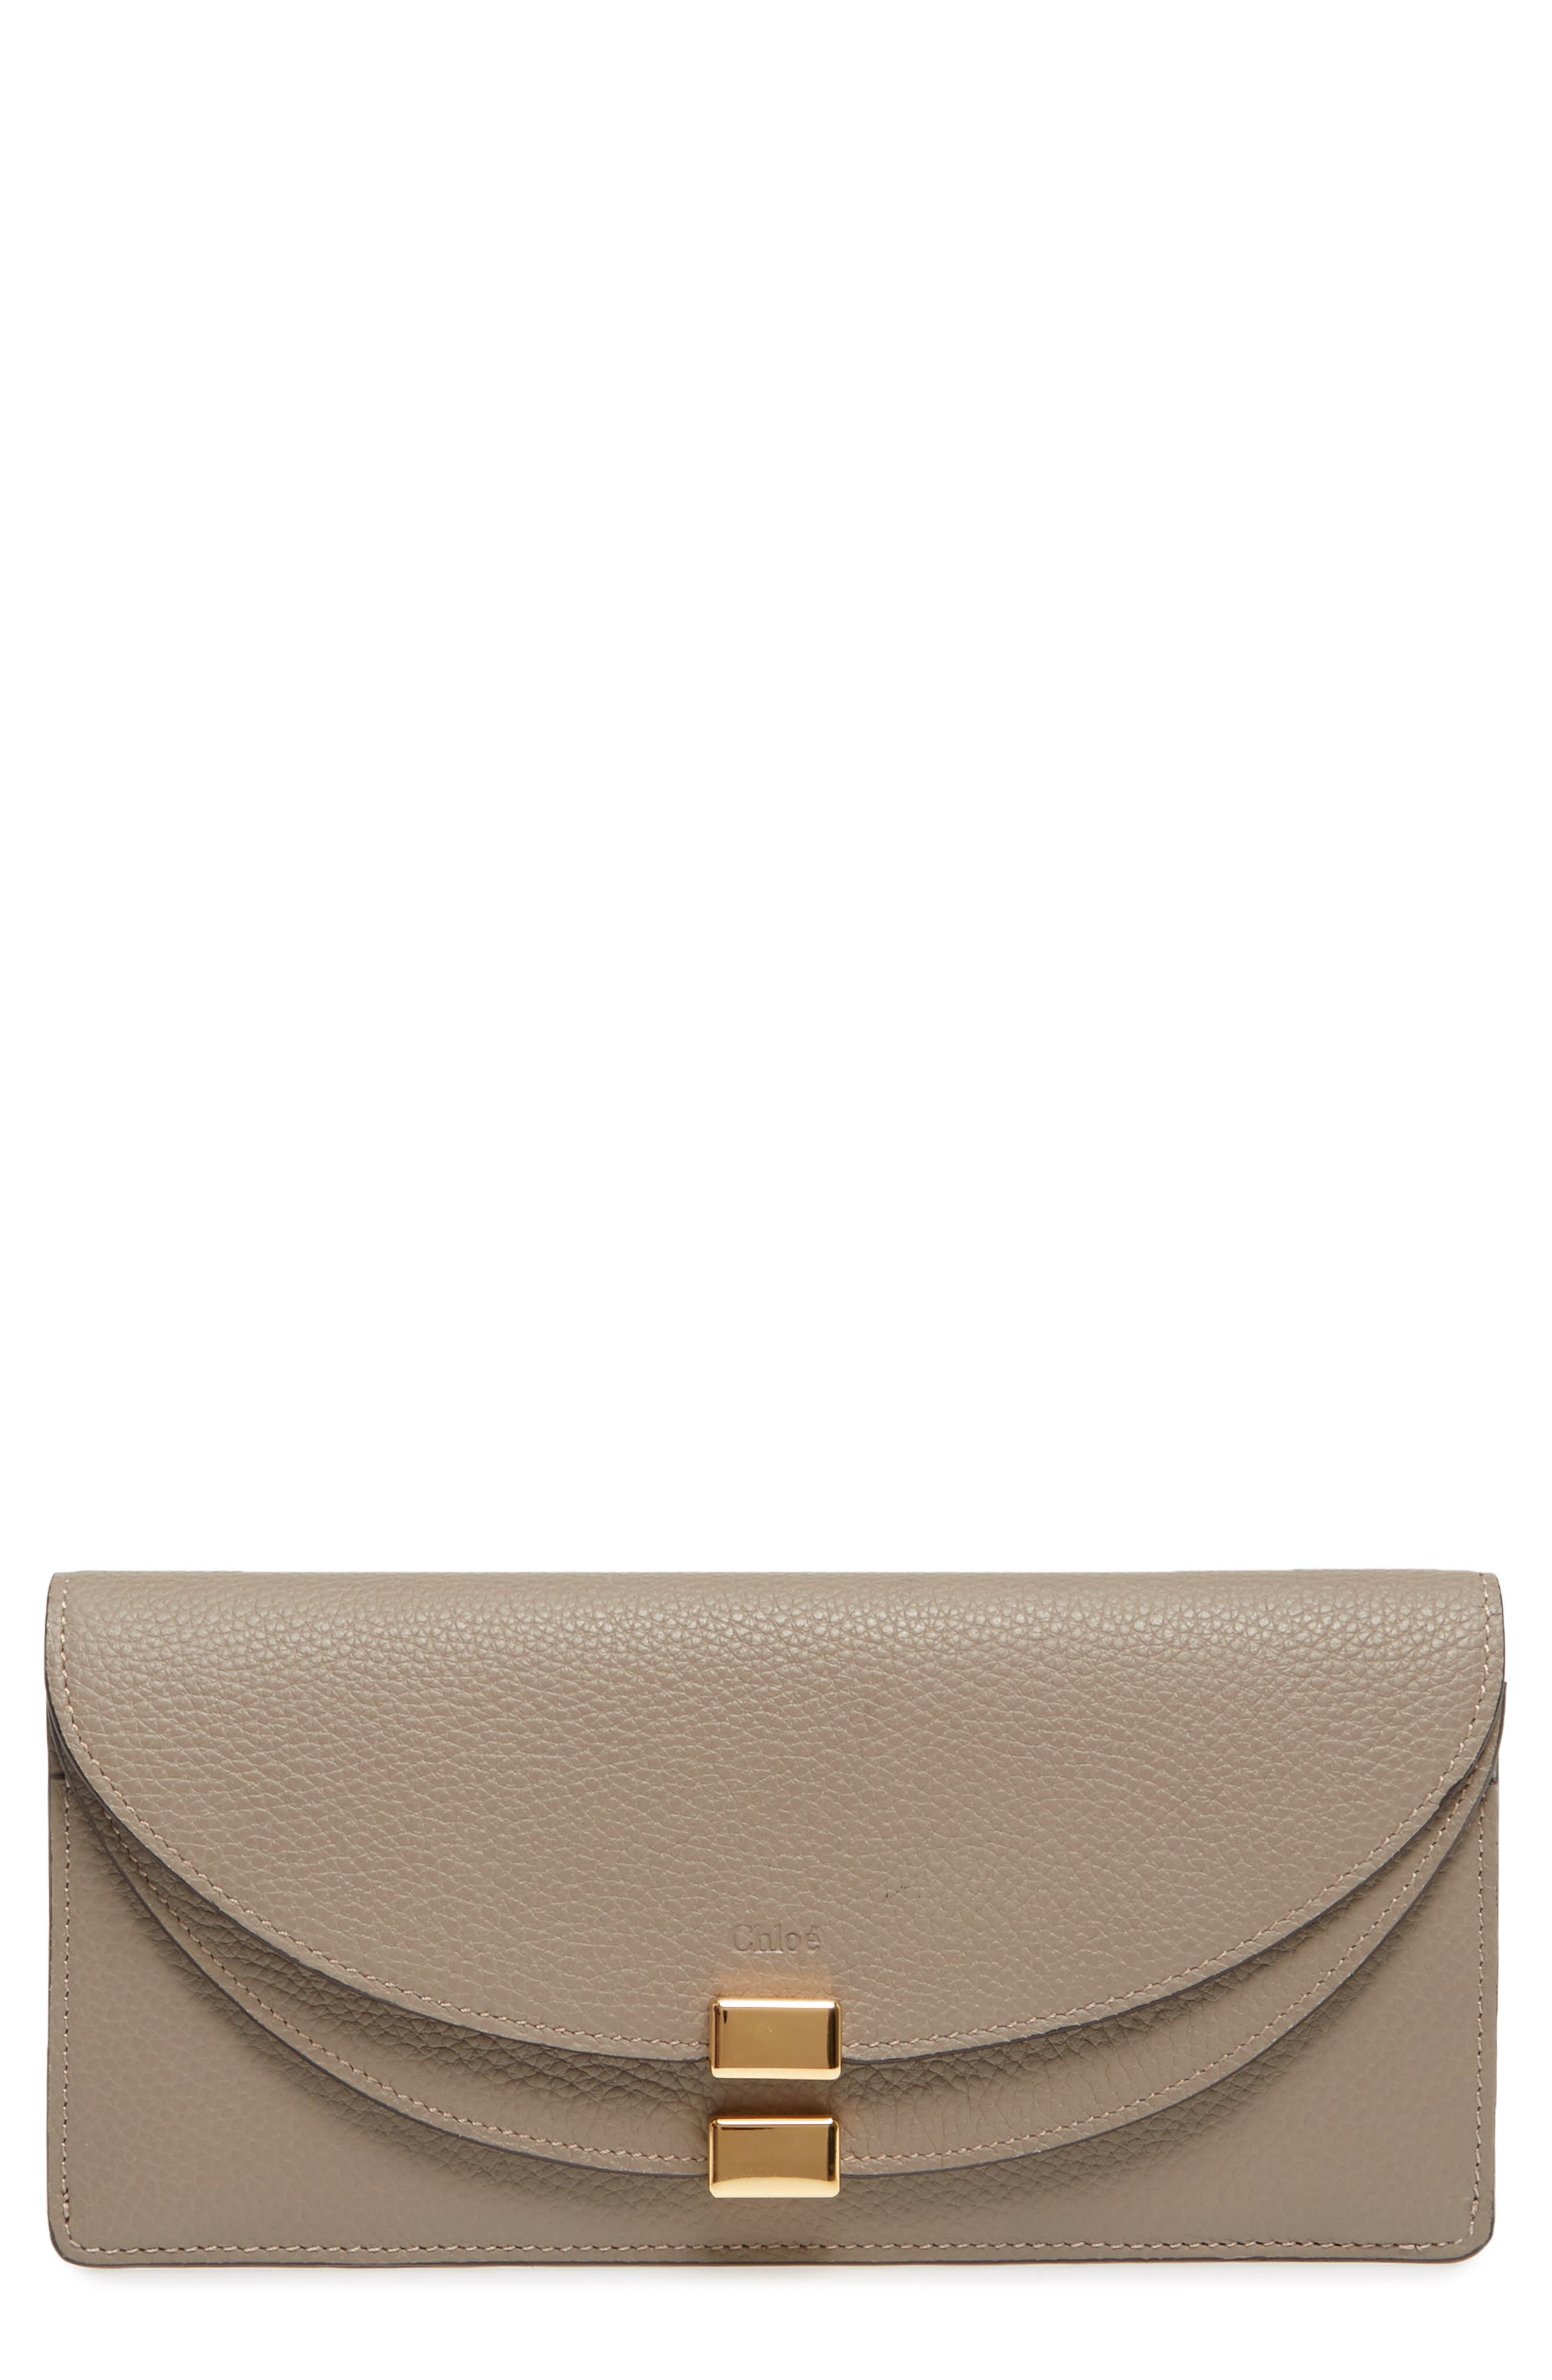 Main Image - Chloé Georgia Continental Leather Wallet